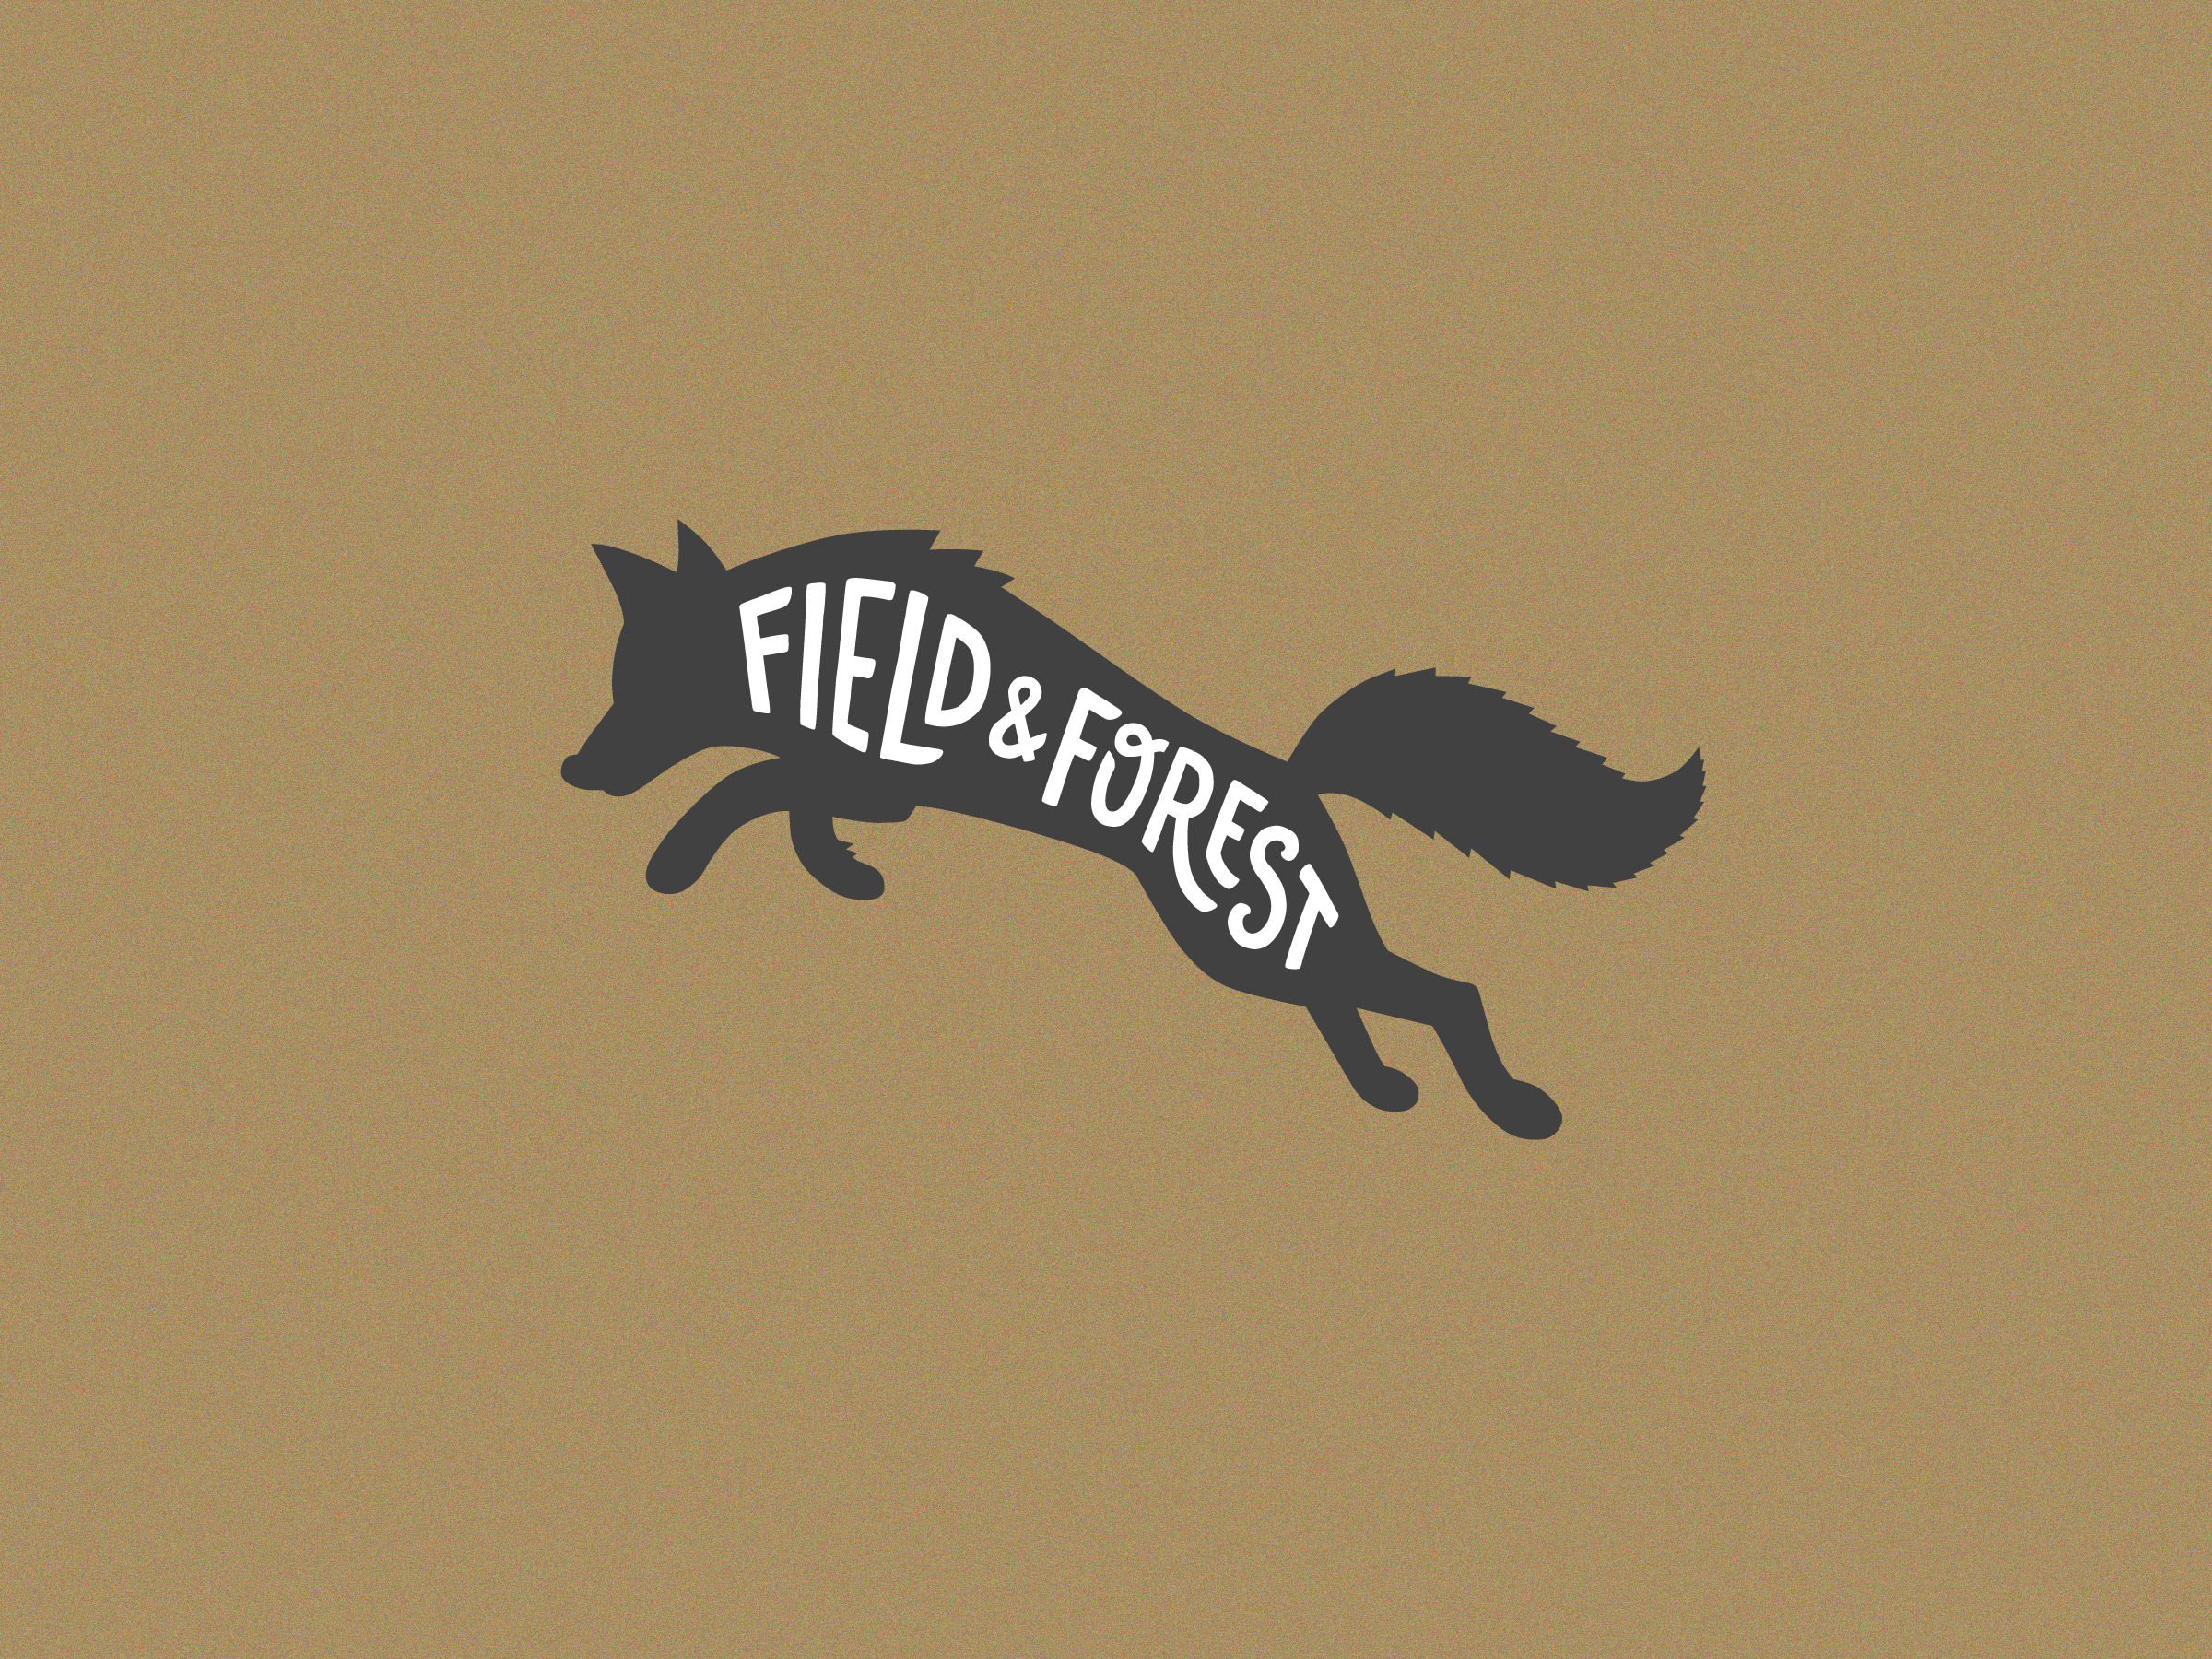 Field & Forest